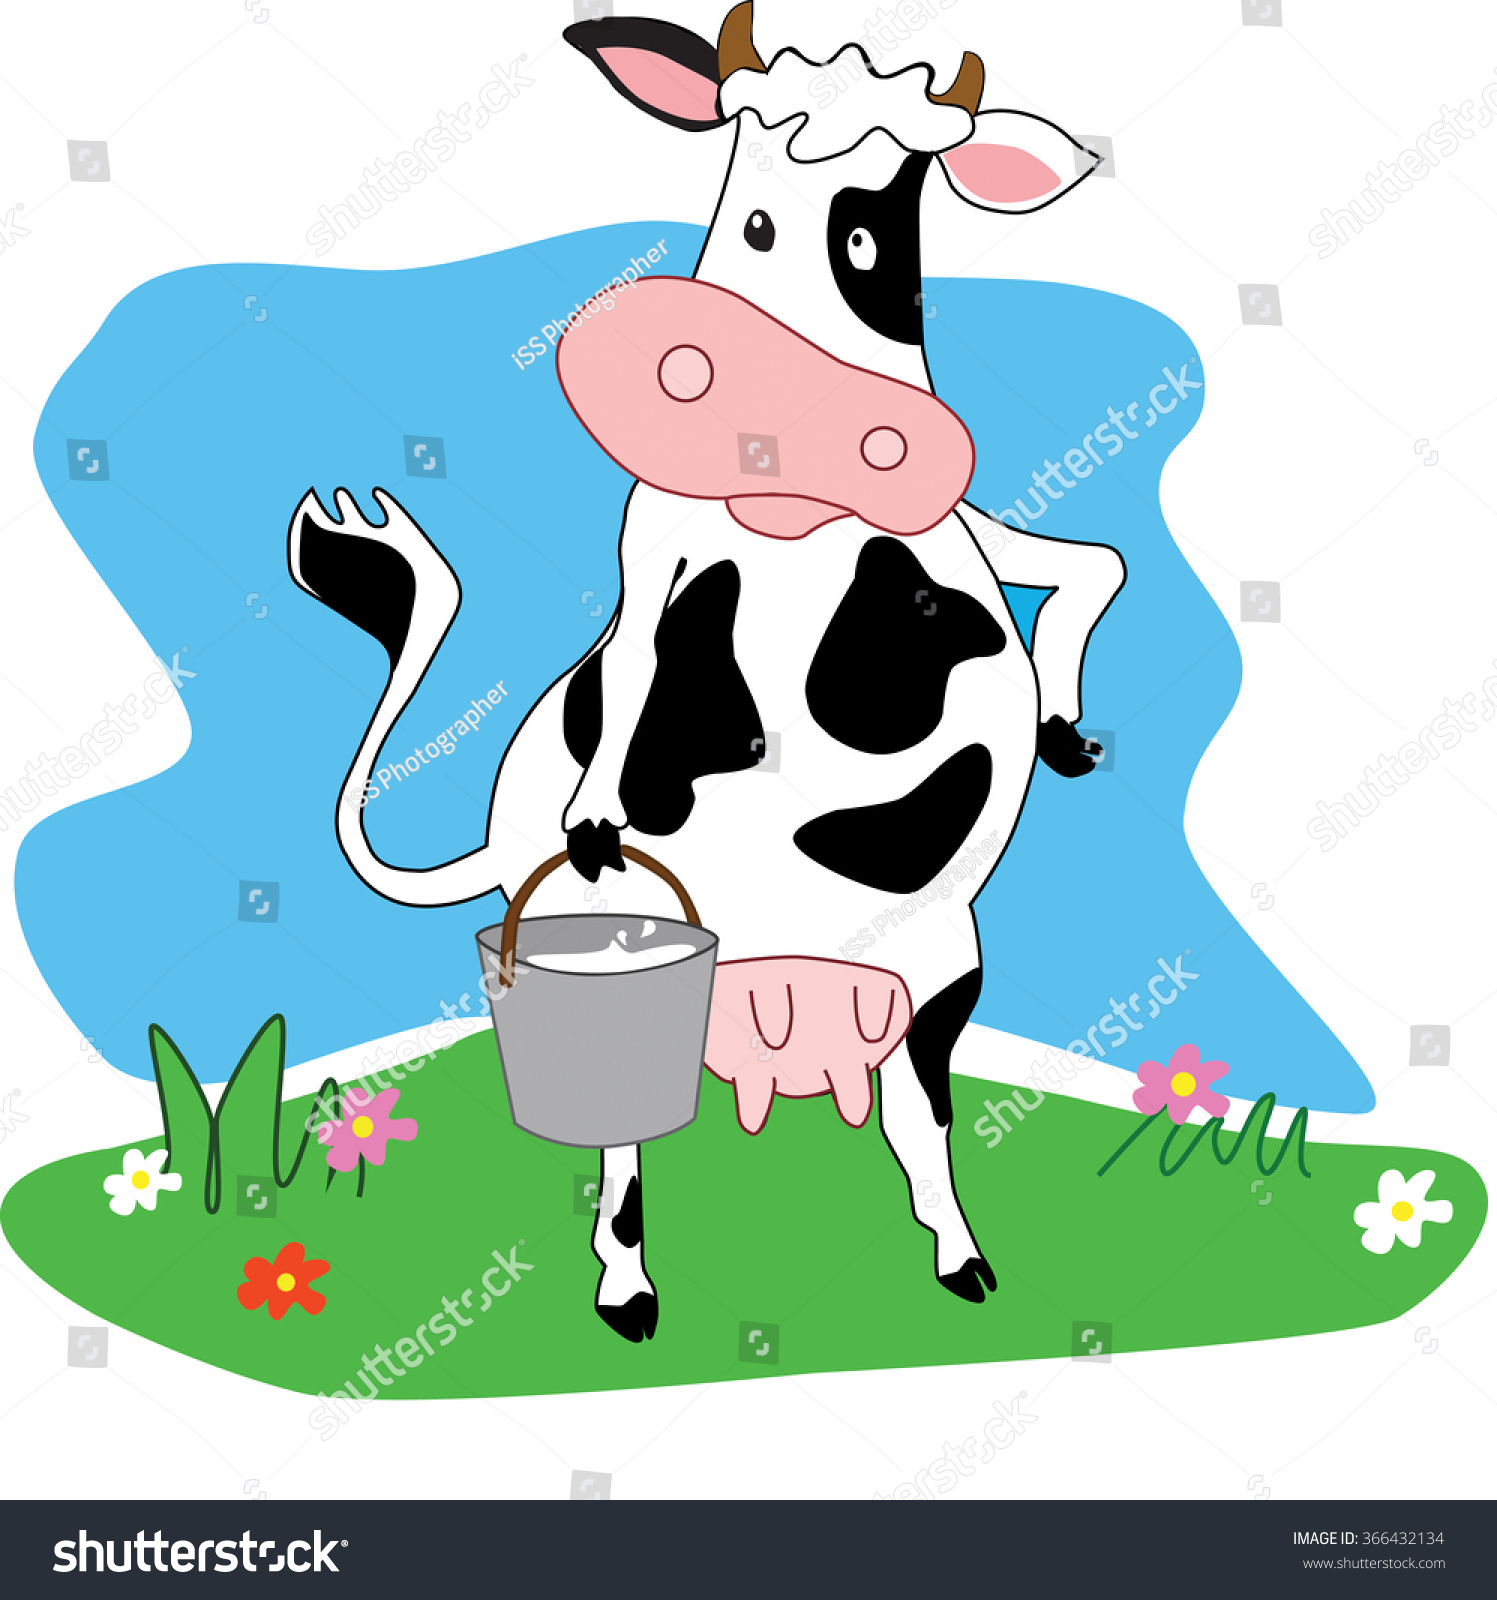 Image result for Image Milking a wooden cow